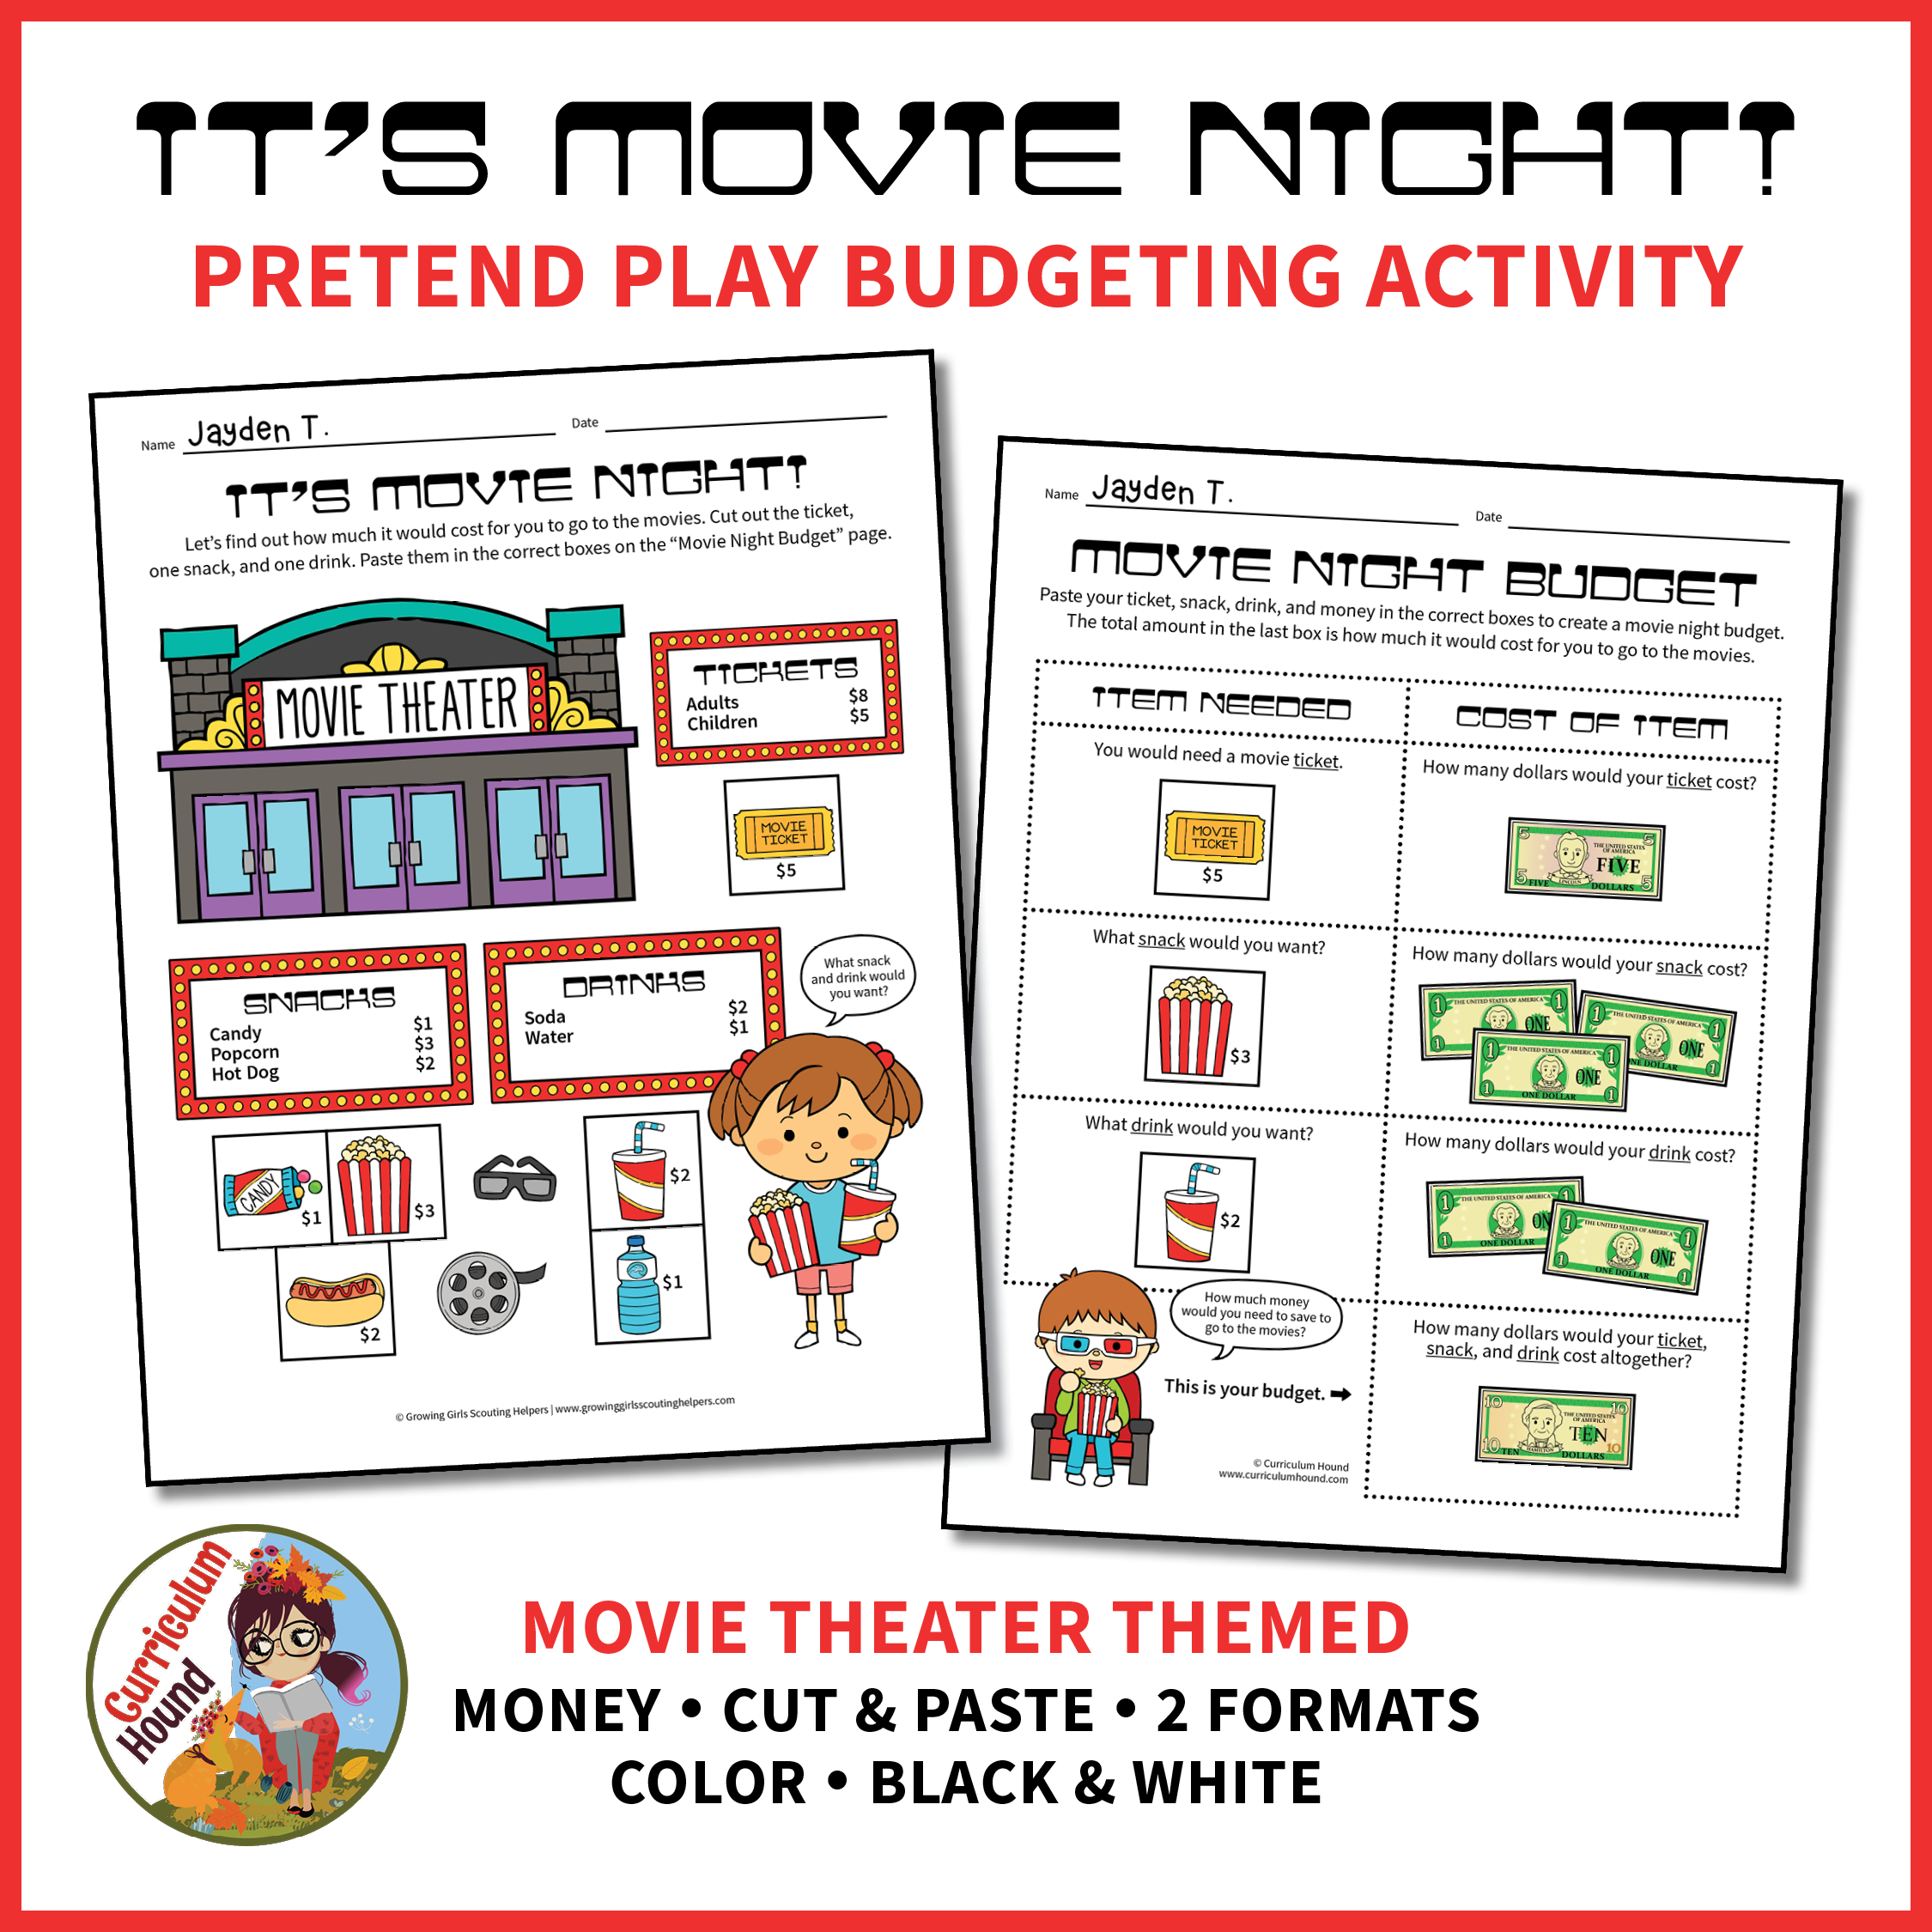 Movie Theater Budgeting Activity